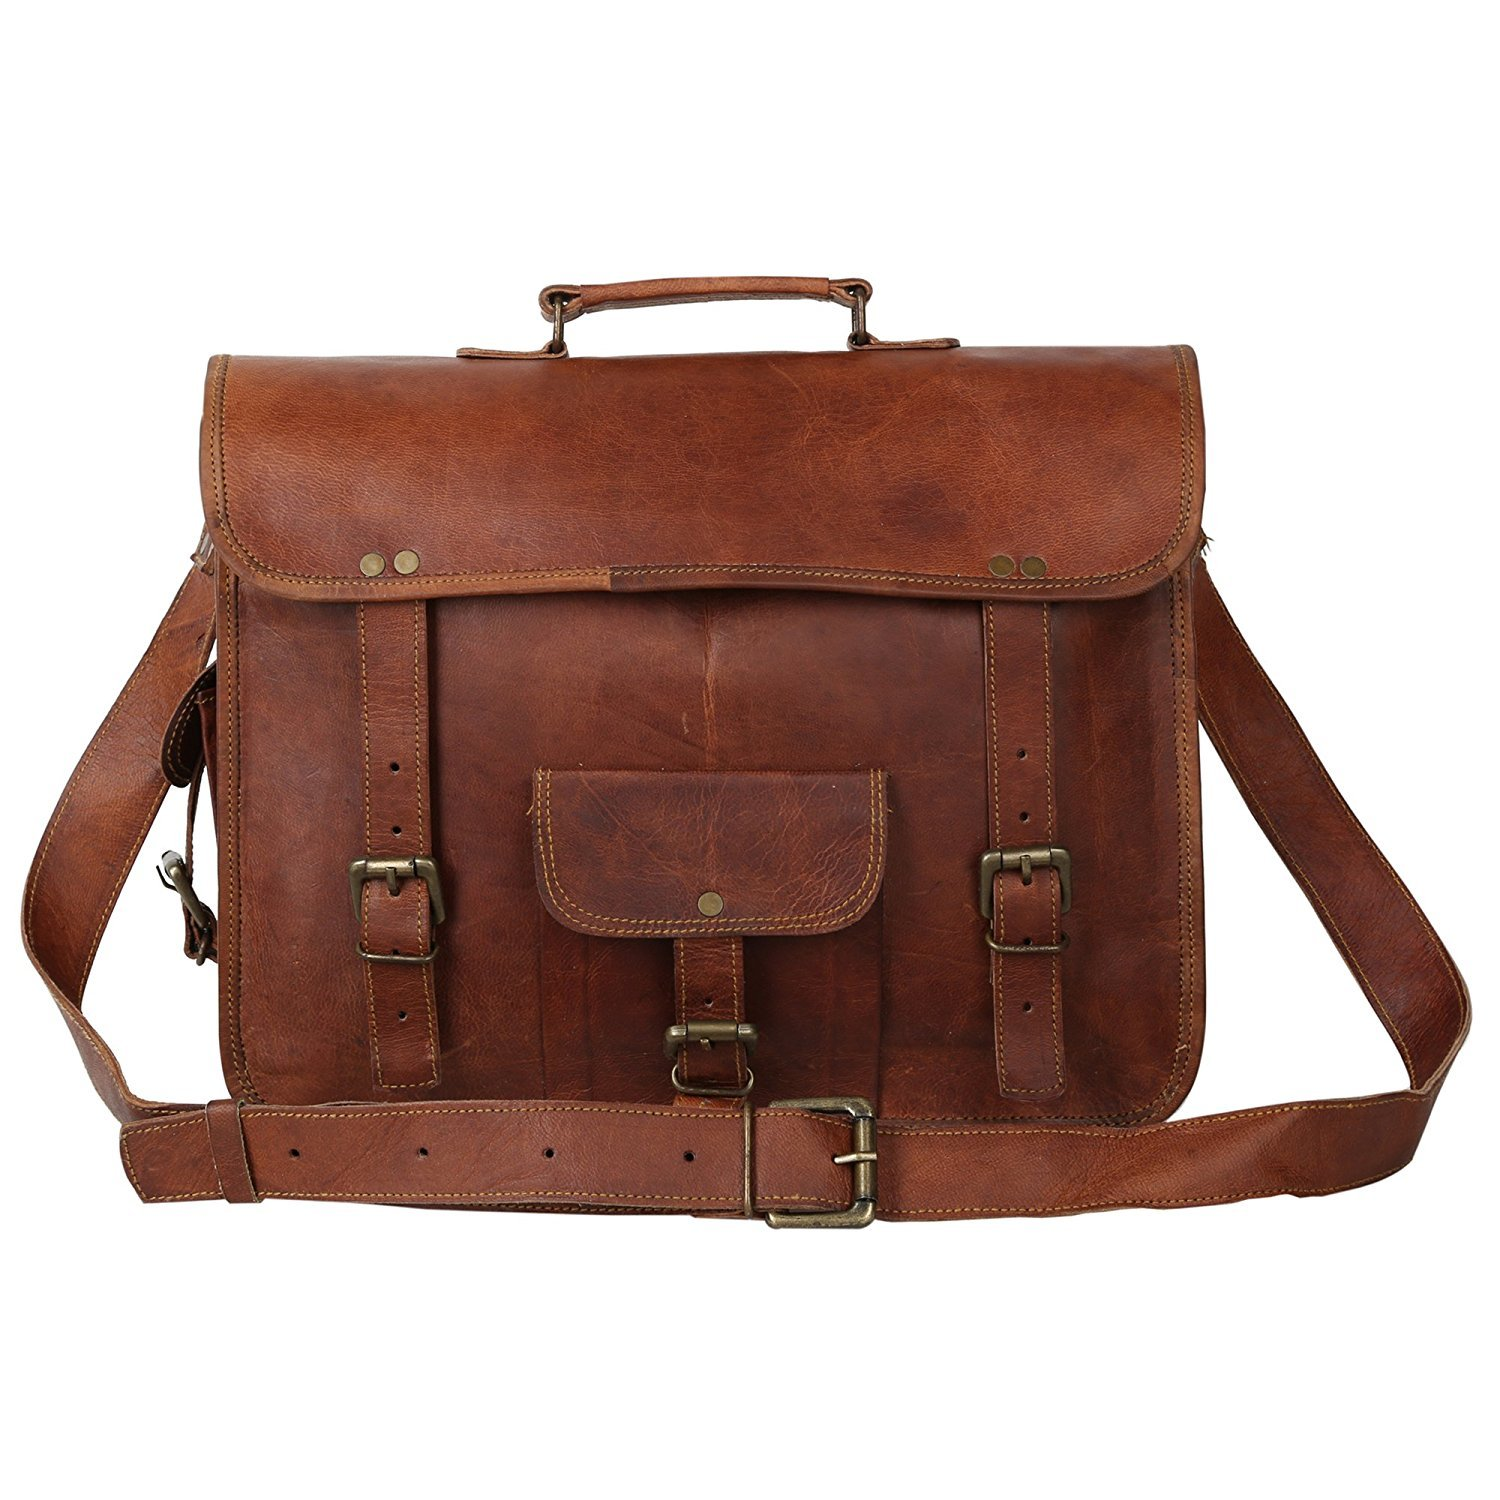 cb36b45c4d2e Mk Bags vintage bags genuine leather messenger bag cum office bag 63:  Amazon.in: Bags, Wallets & Luggage